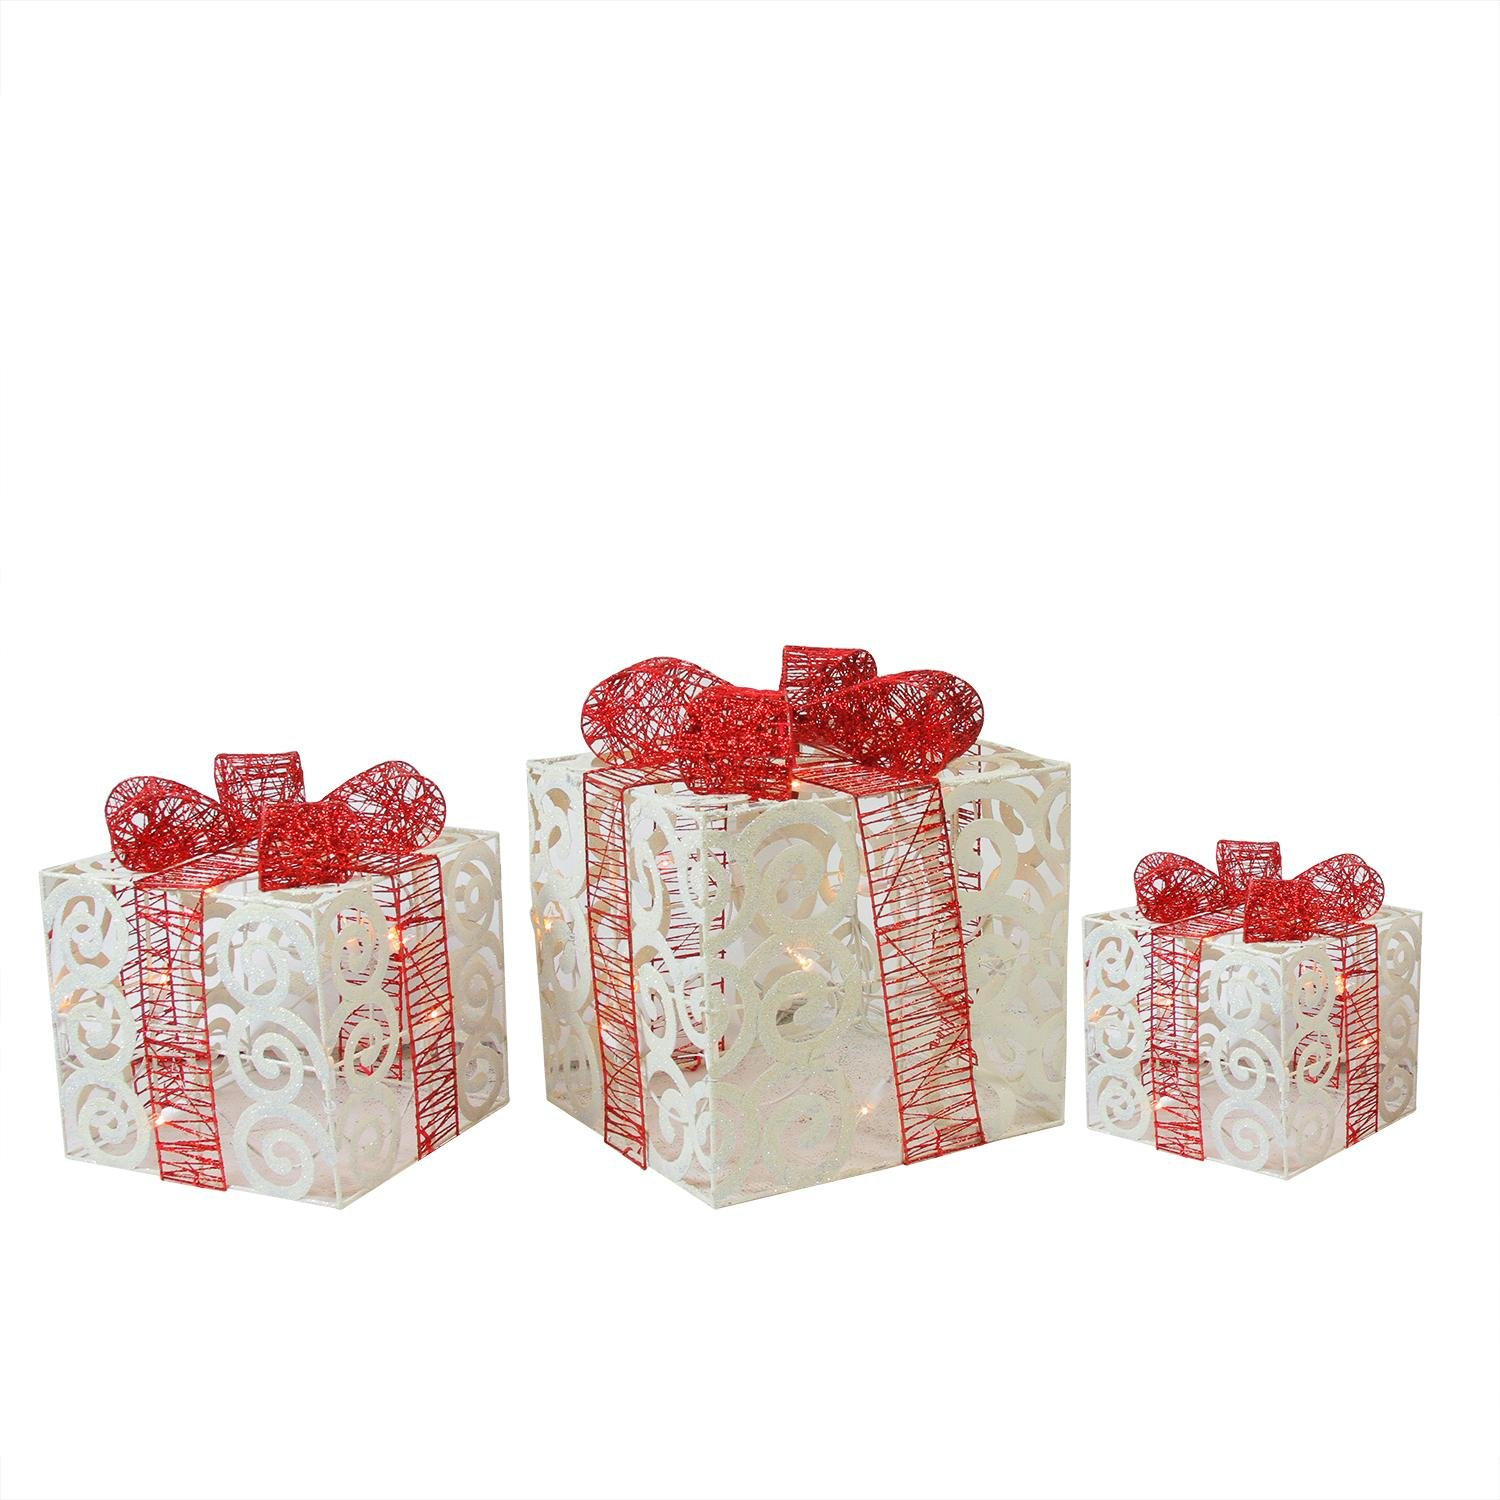 Northlight Set of 3 Lighted Sparkling White Swirl Glitter Gift Boxes Christmas Yard Art Decorations